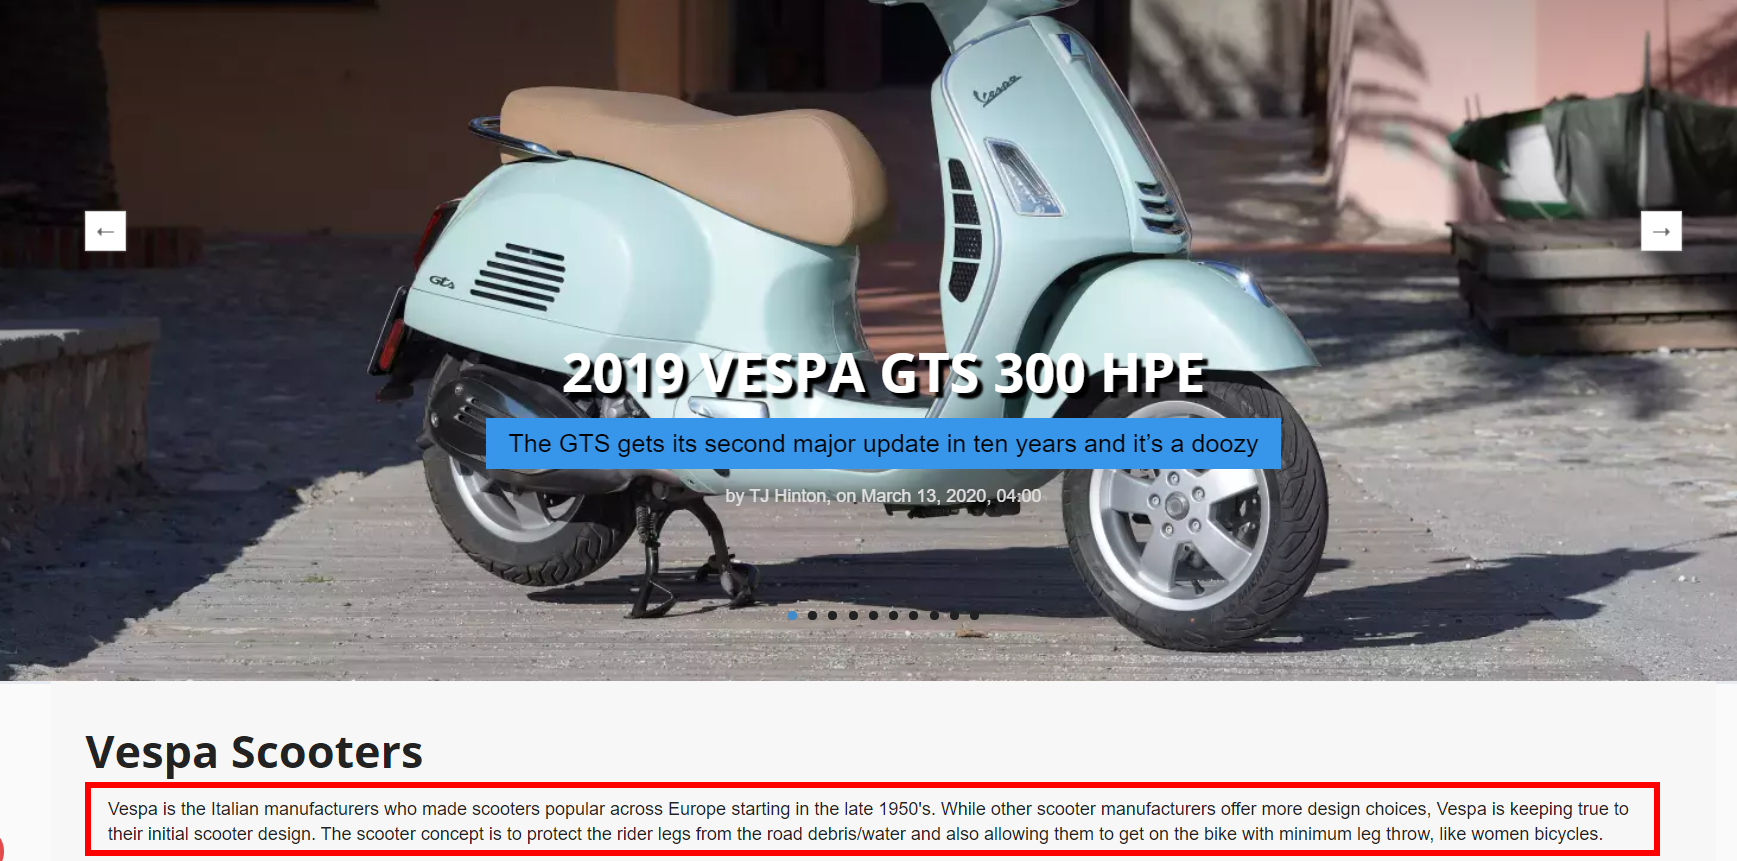 Example of a Vespa Scooter